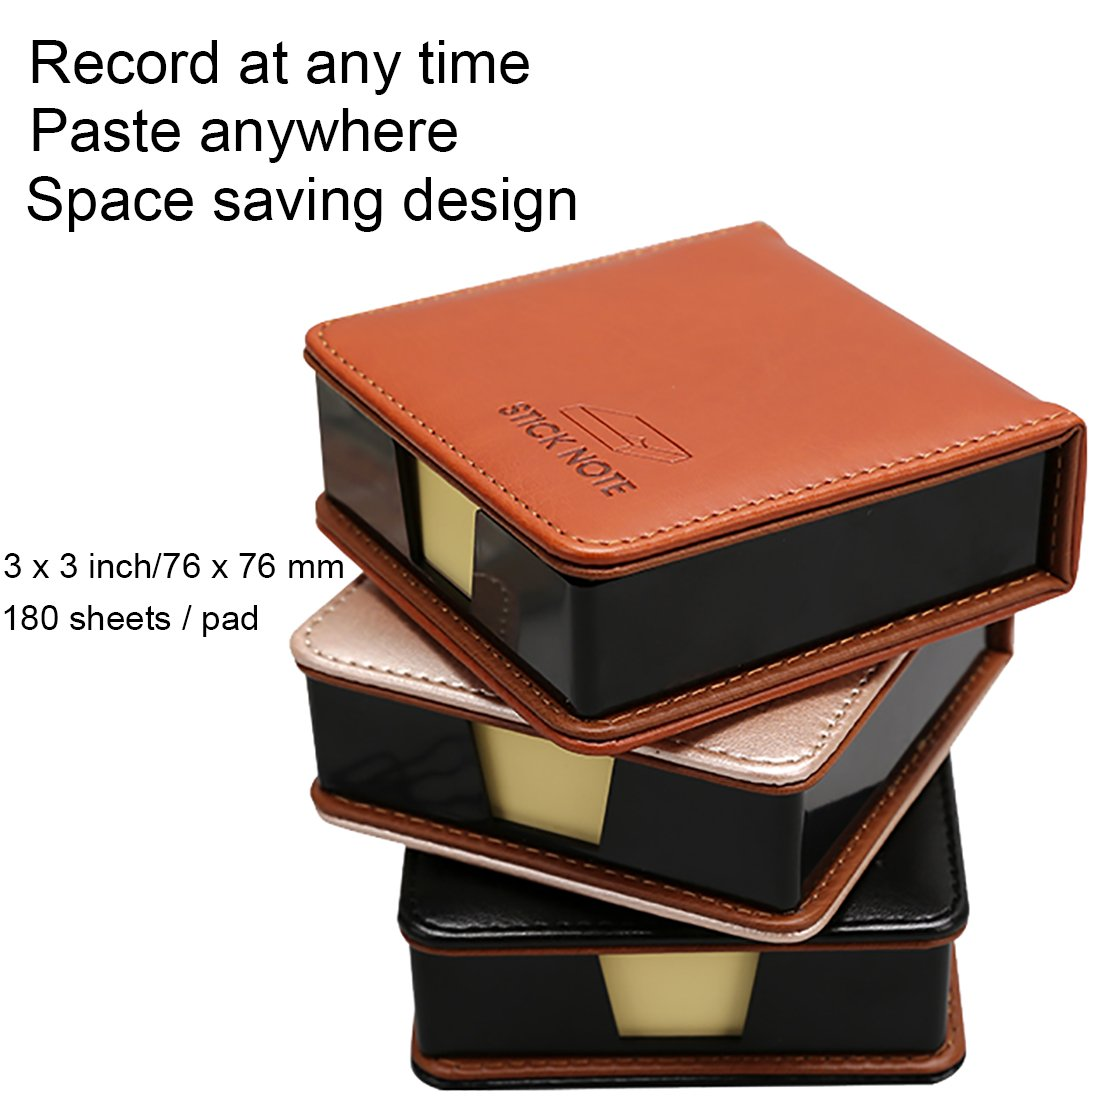 MyLifeUNIT Business Sticky Notes Holder with 3 x 3 inch Sticky Note, 3 Pack (Black) by MyLifeUNIT (Image #2)